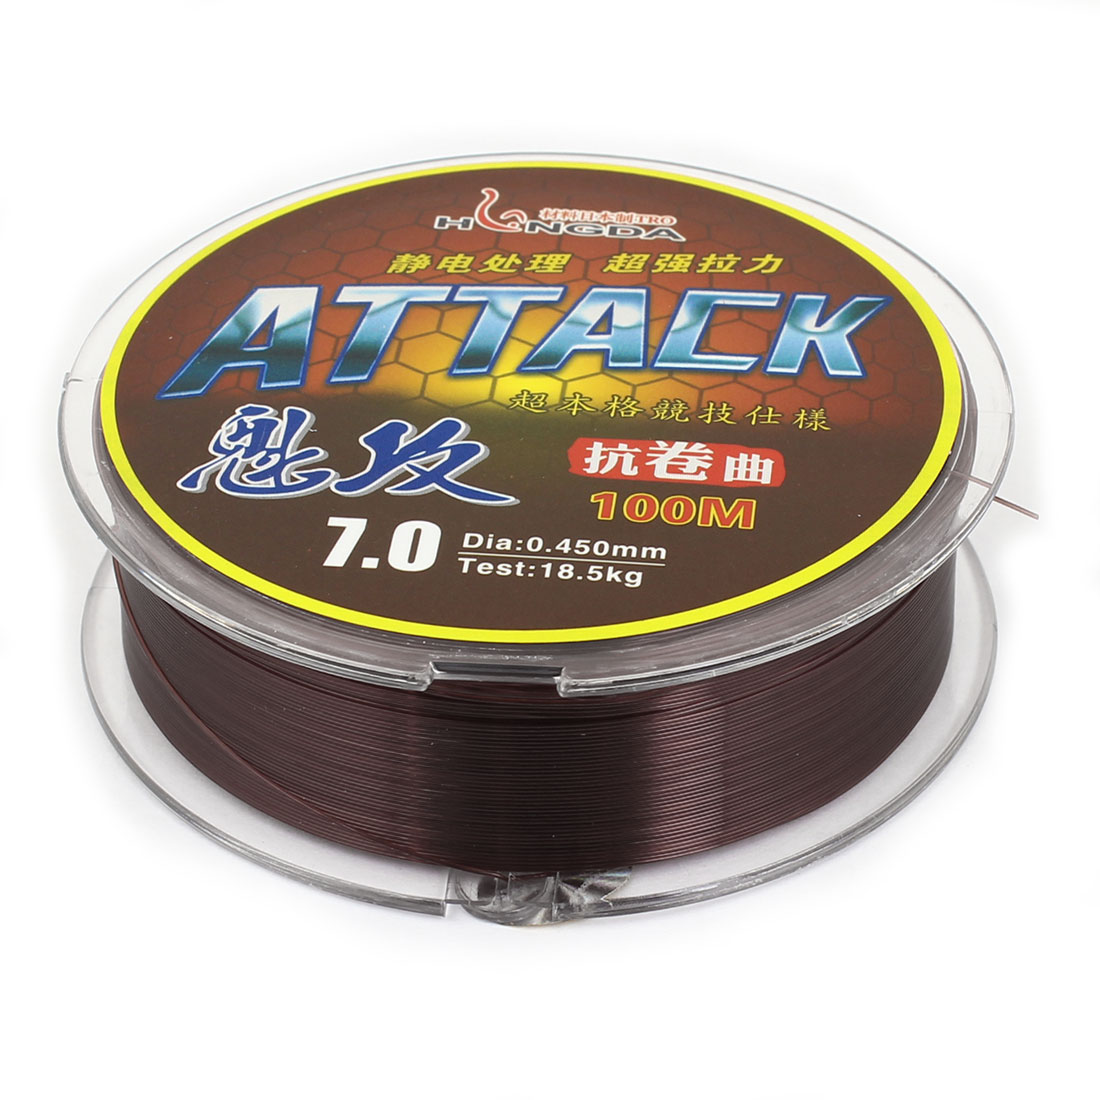 Brown Nylon Thread 0.450mm Diameter 18.5Kg Fishing Line Spool 100M